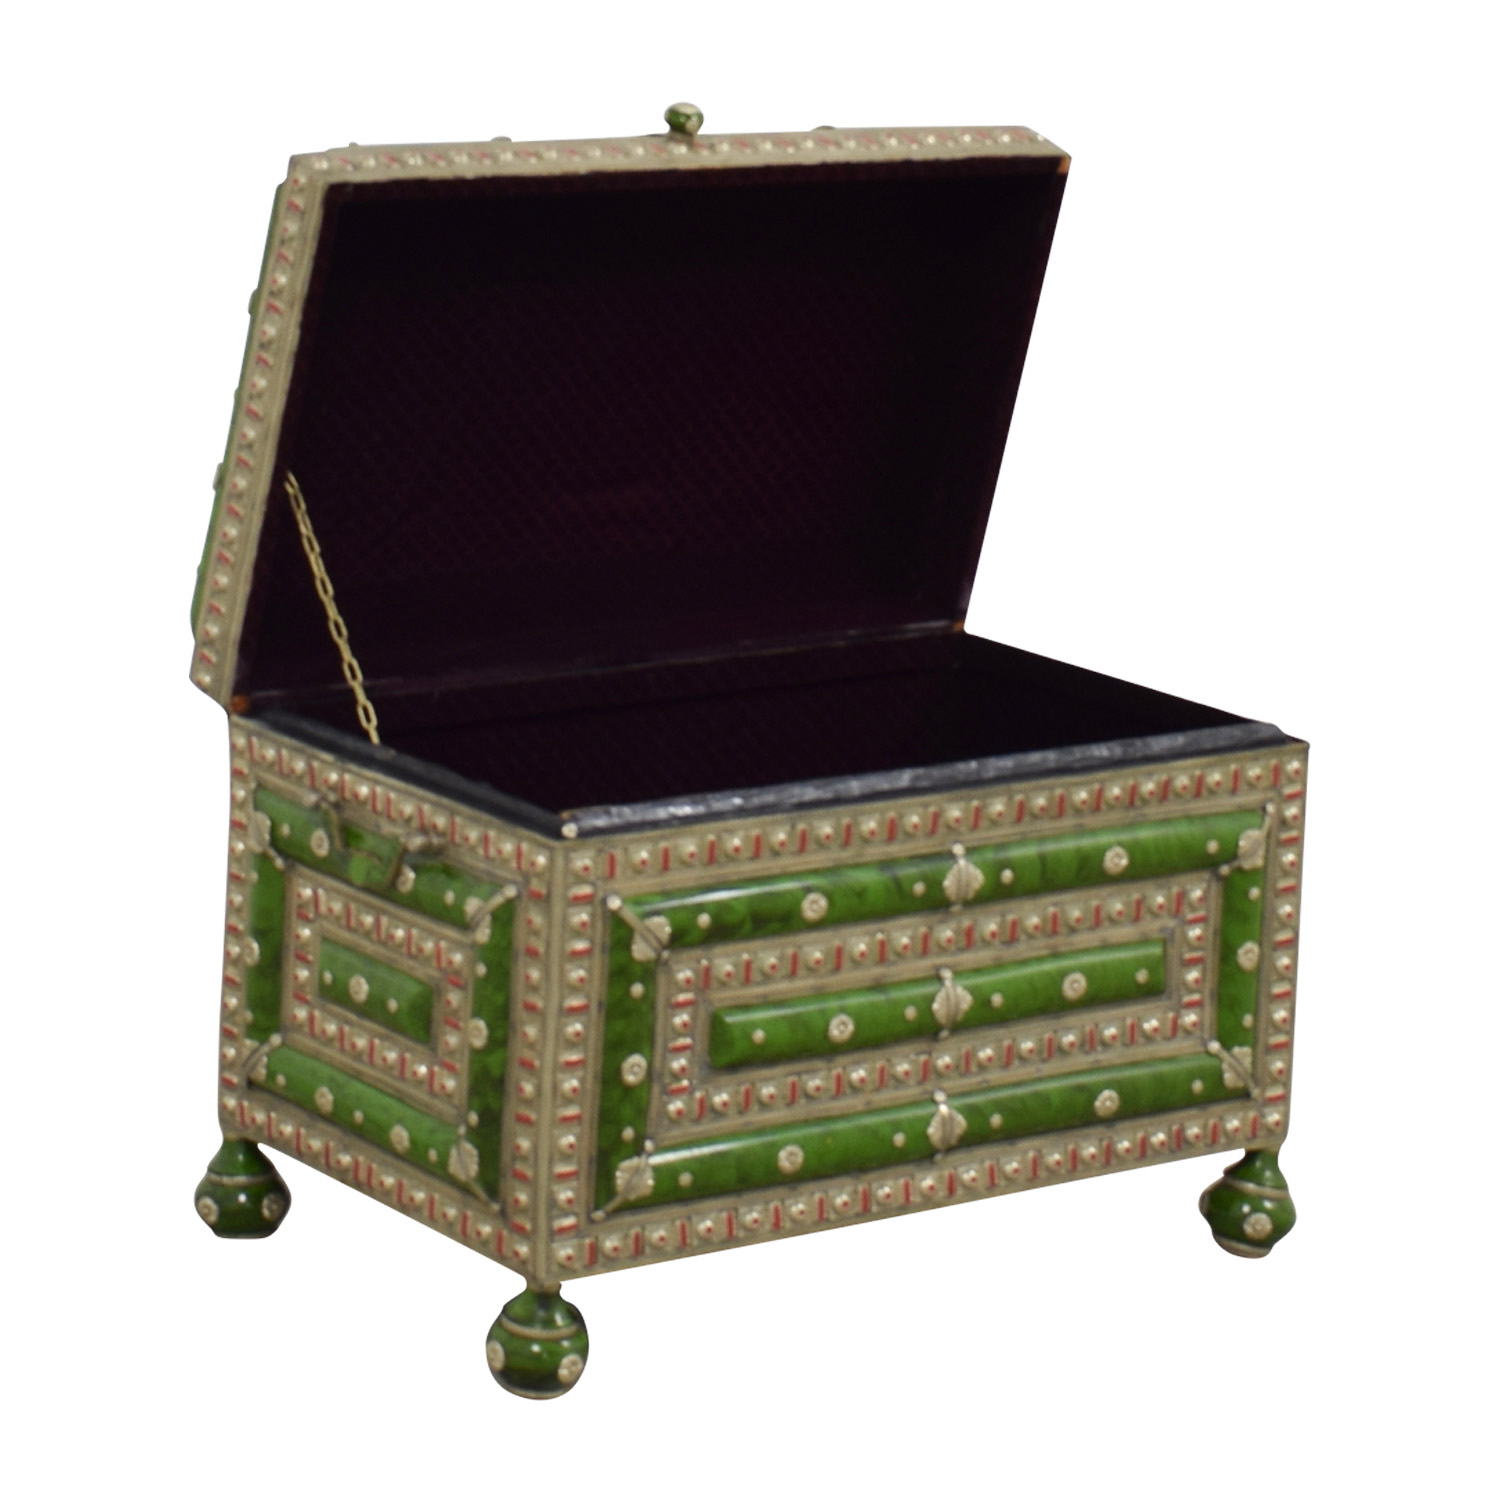 Antique Morroccan Precious Jewel Trunk and Table sale